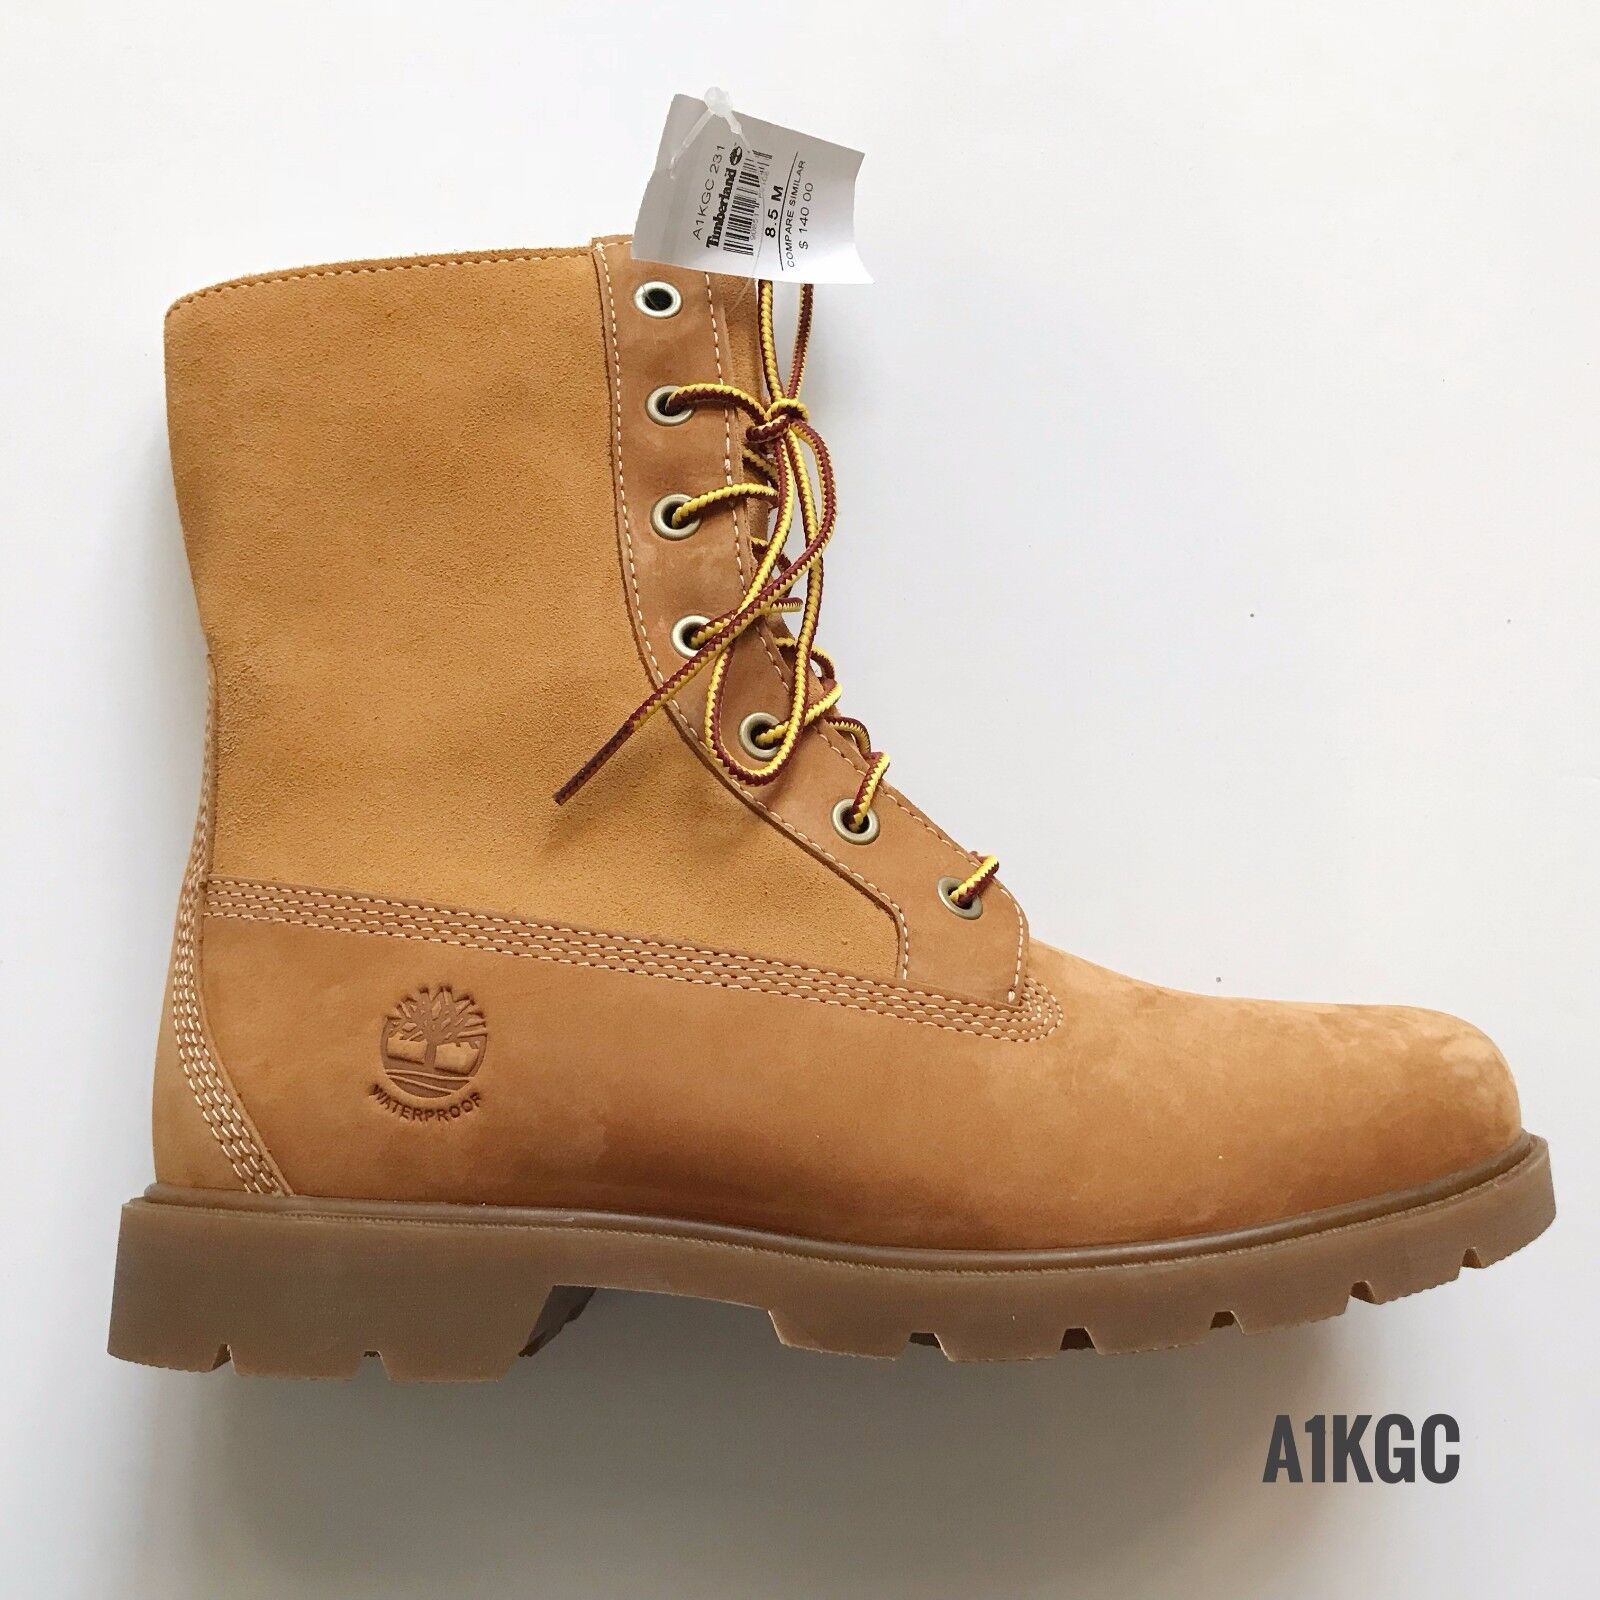 6dd73fbeed5 NWT Timberland Women's Teddy Fleece Fold-Down Waterproof Boot 4 Colors All  Sizes